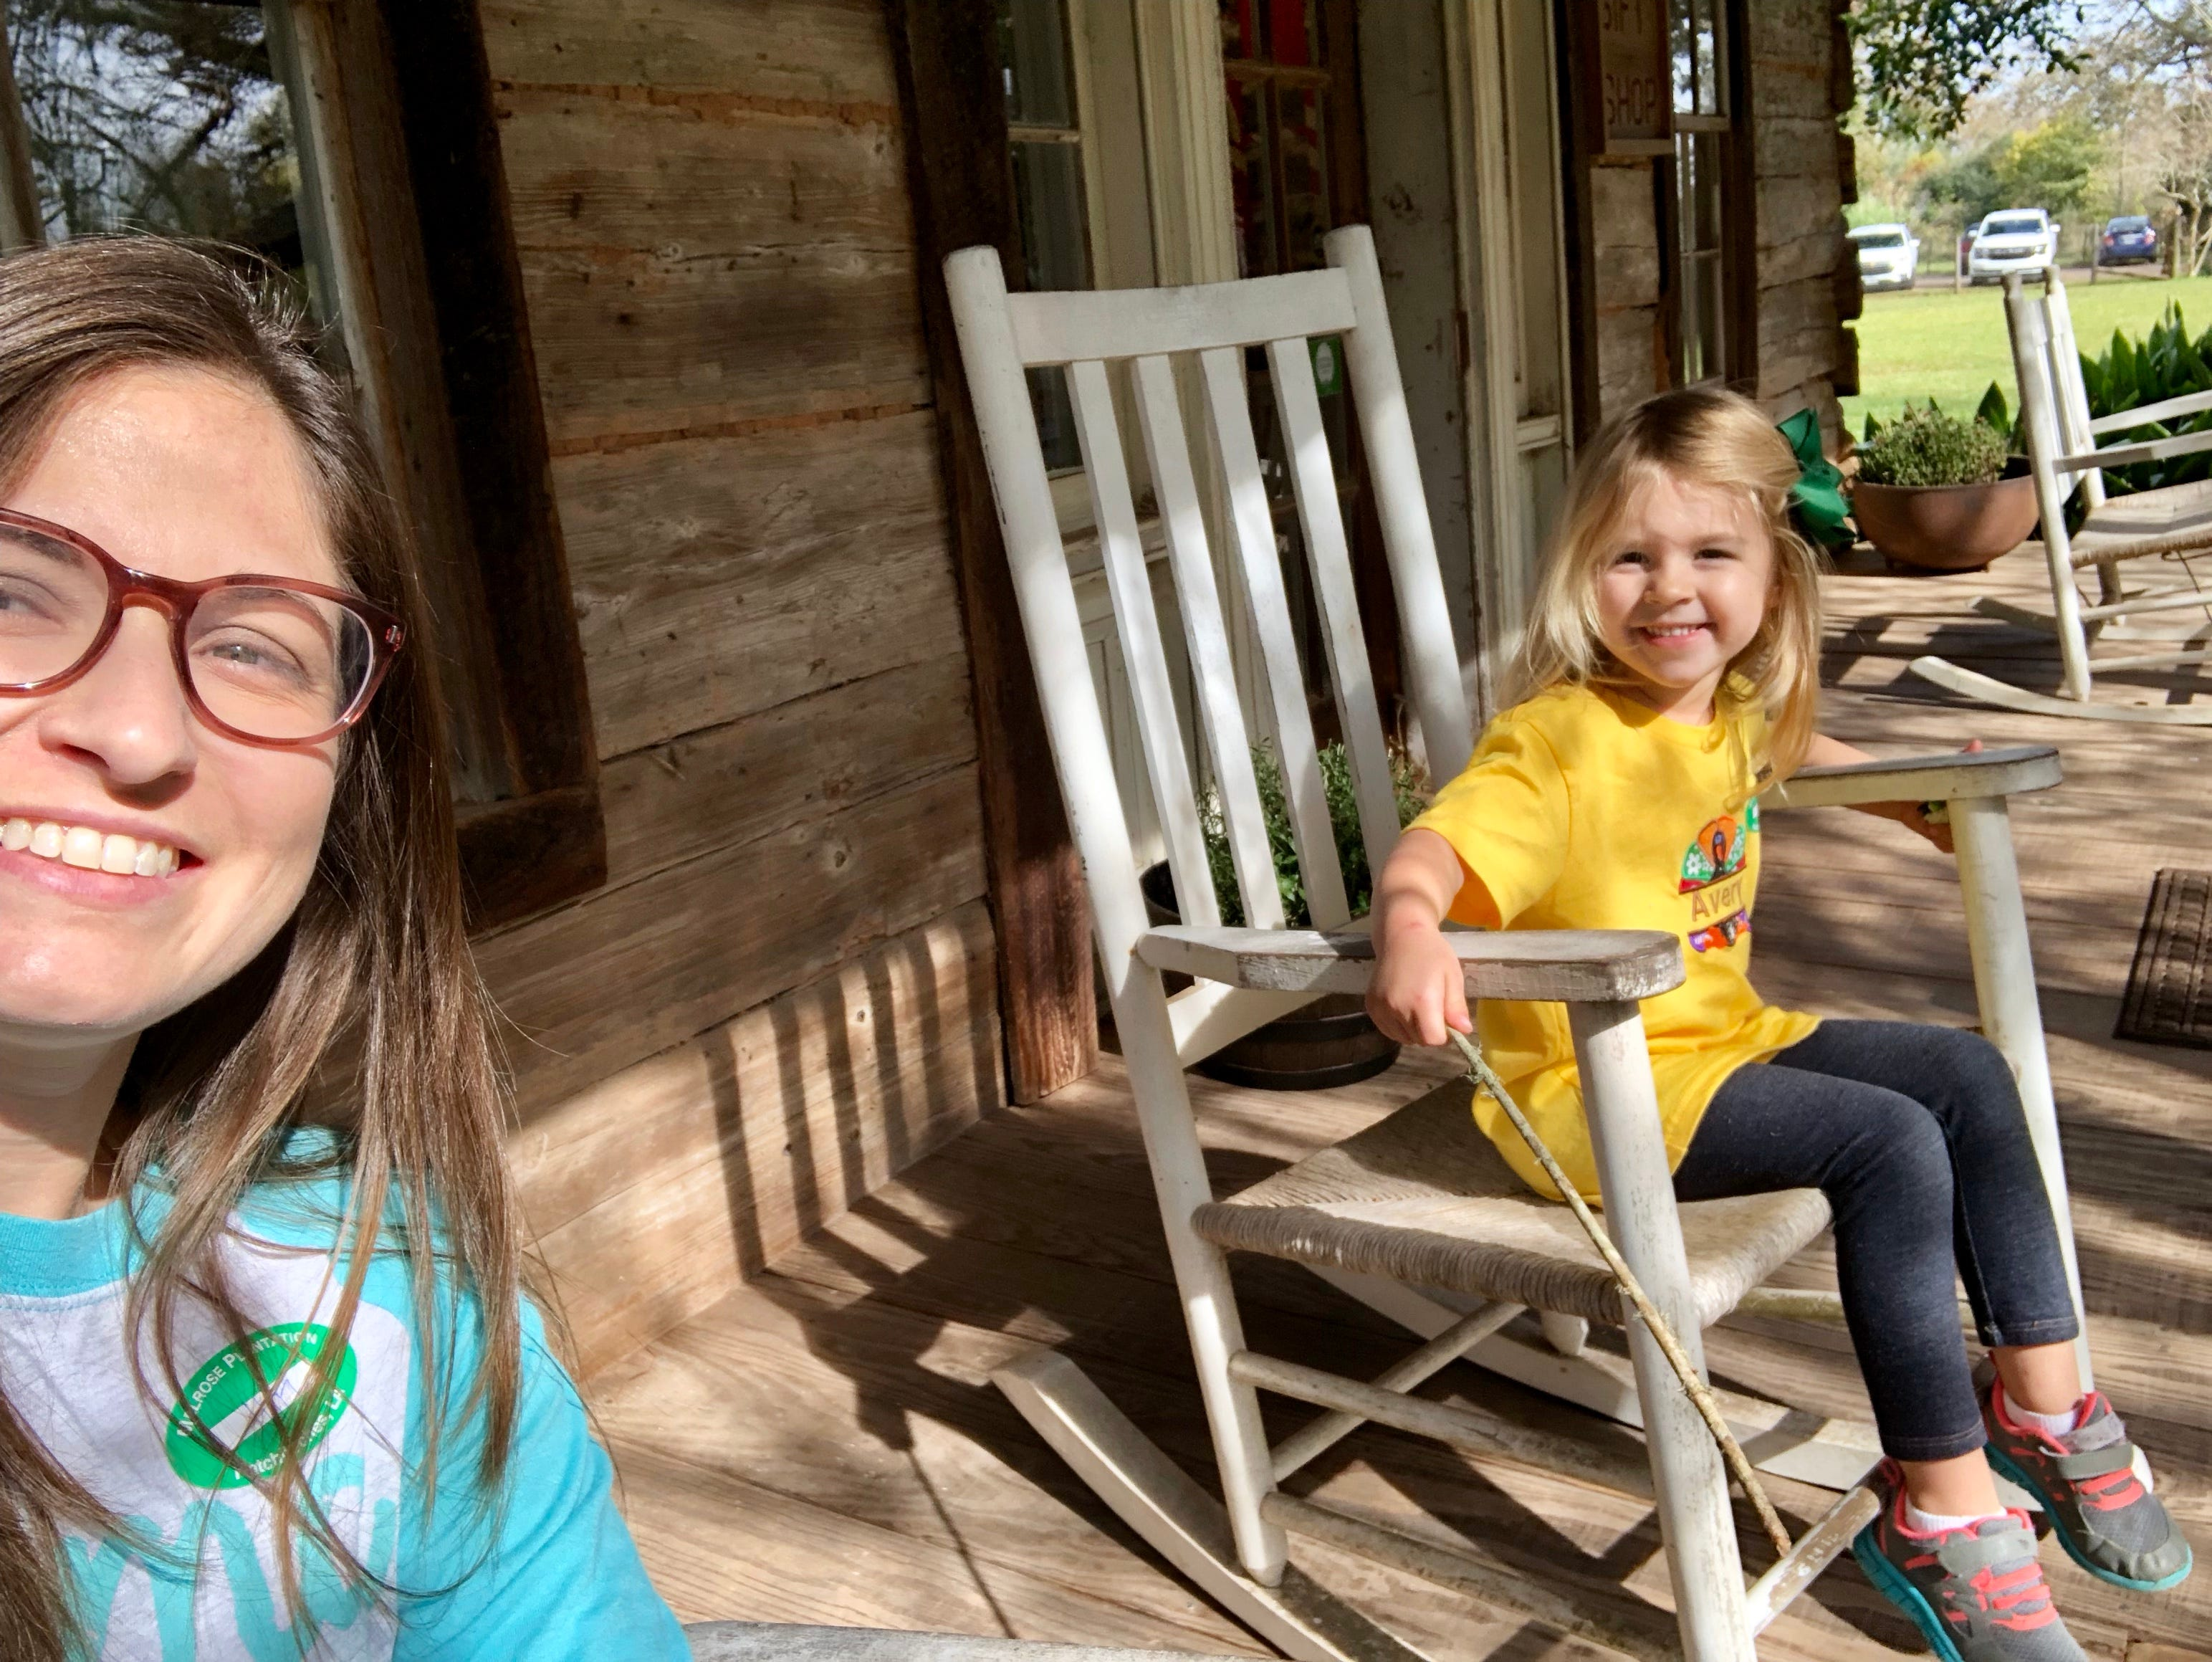 Travel and tourism reporter Leigh Guidry and daughter Avery, 4, rock on the porch of one of the buildings that make up Melrose Plantation in Cloutierville, Natchitoches Parish.